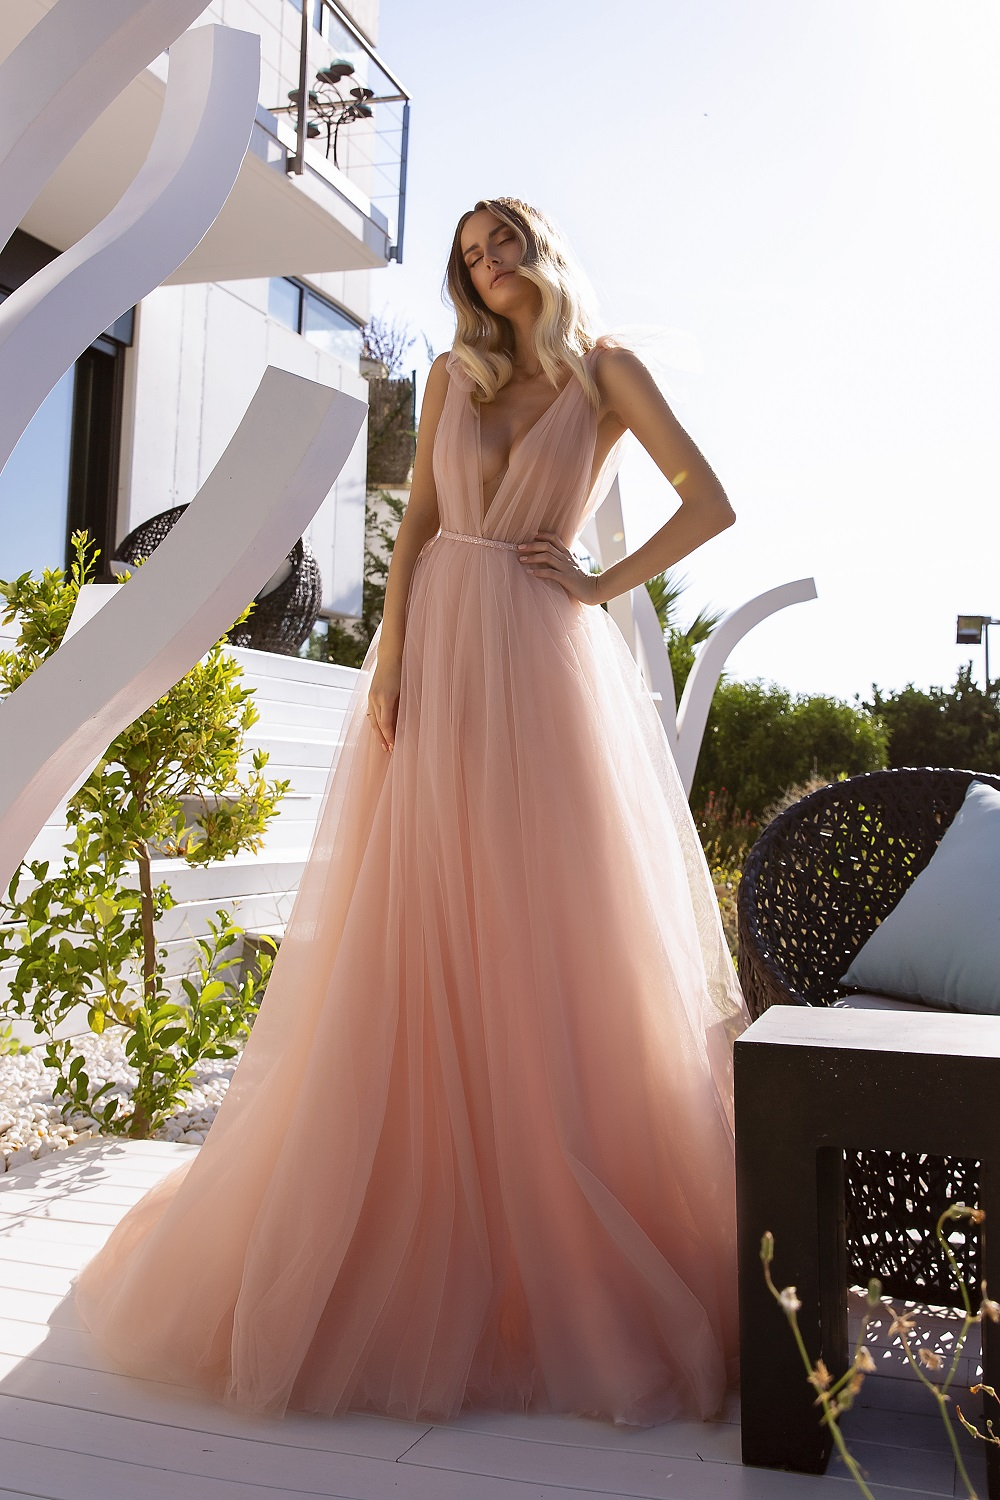 Current Wedding Dress Trends For 2020 What S Hot Right Now Tina Valerdi